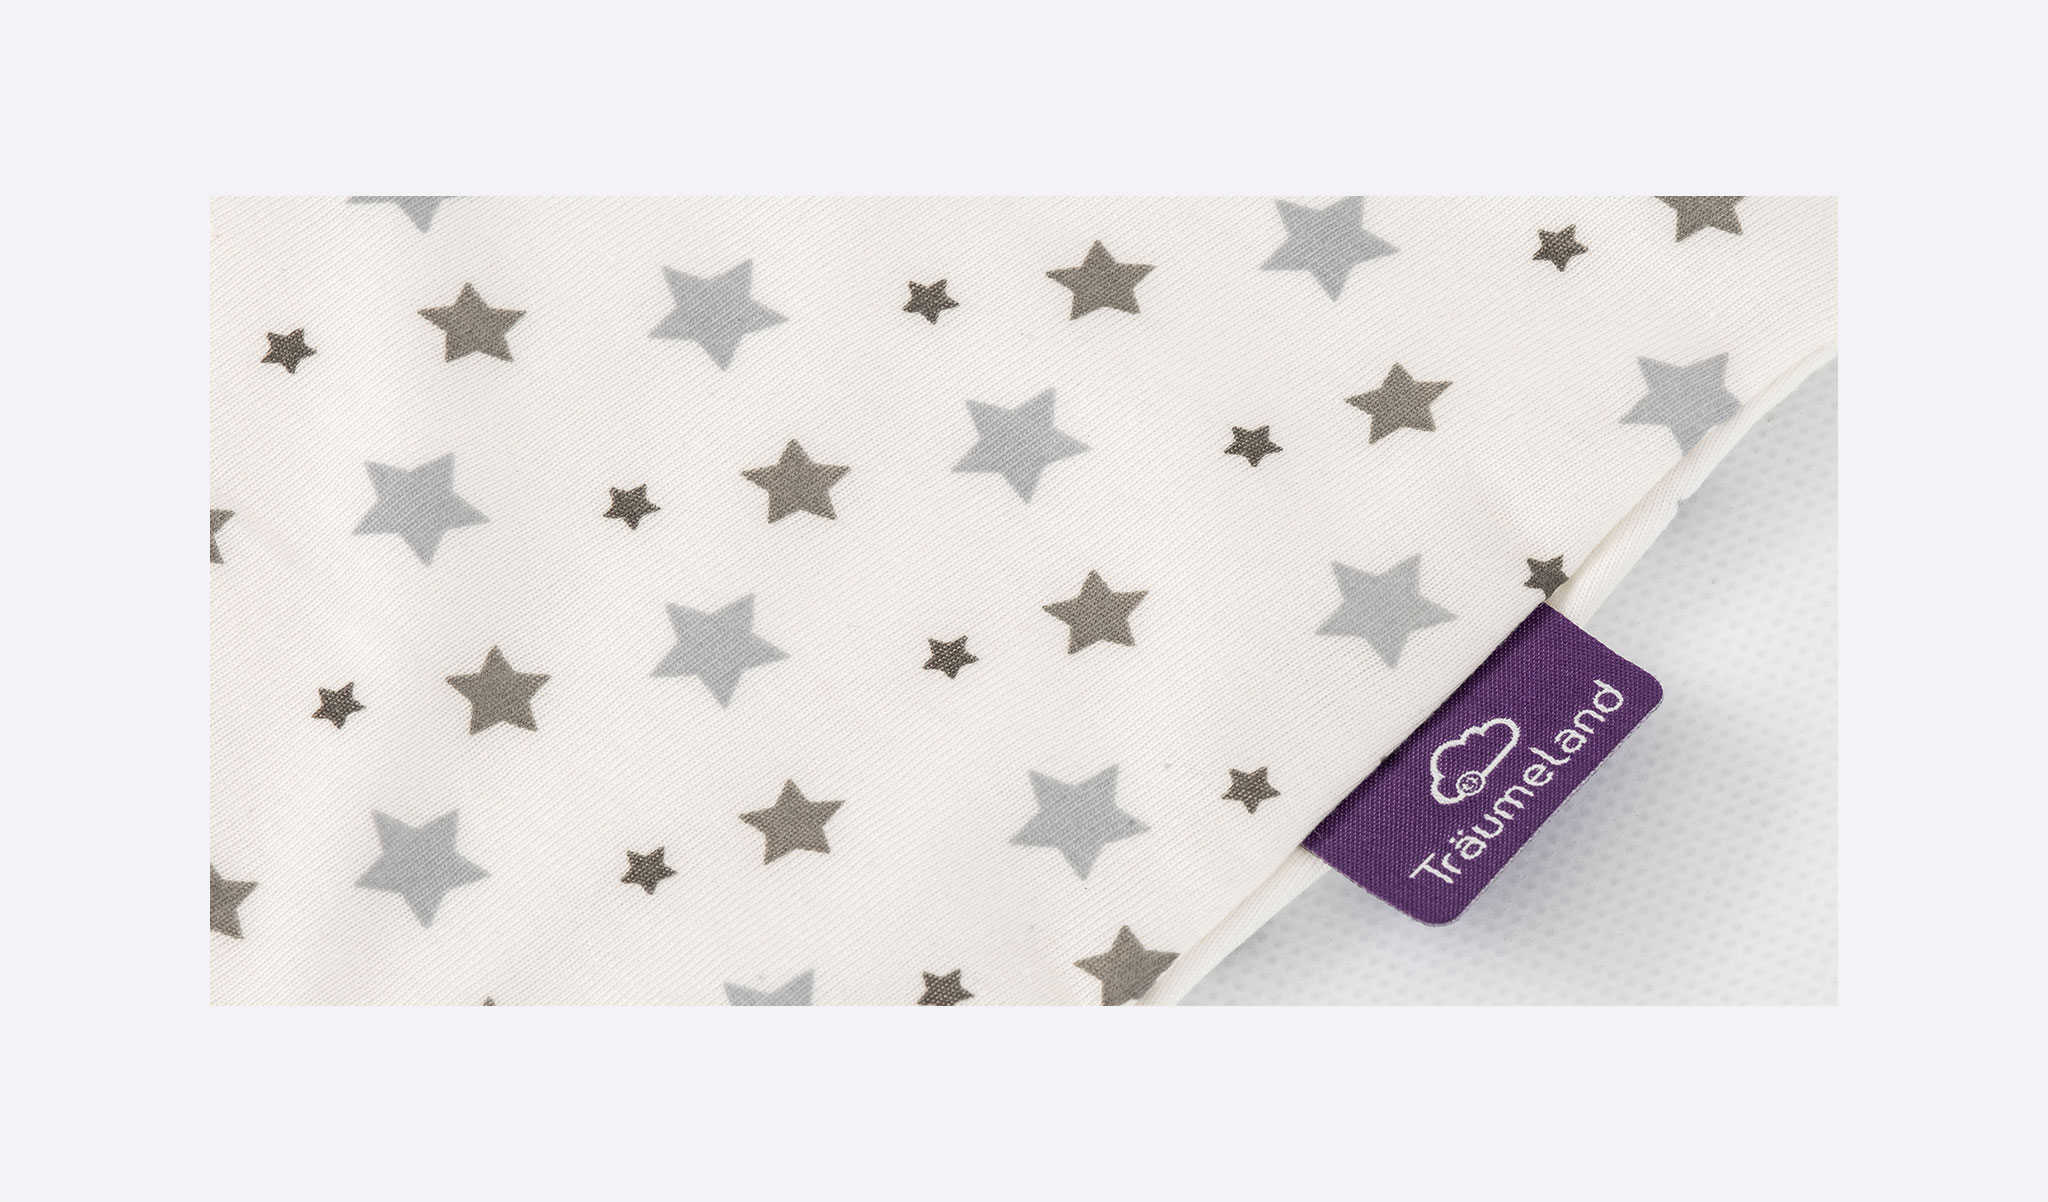 S0300305 - summer sleeping bag white with grey stars